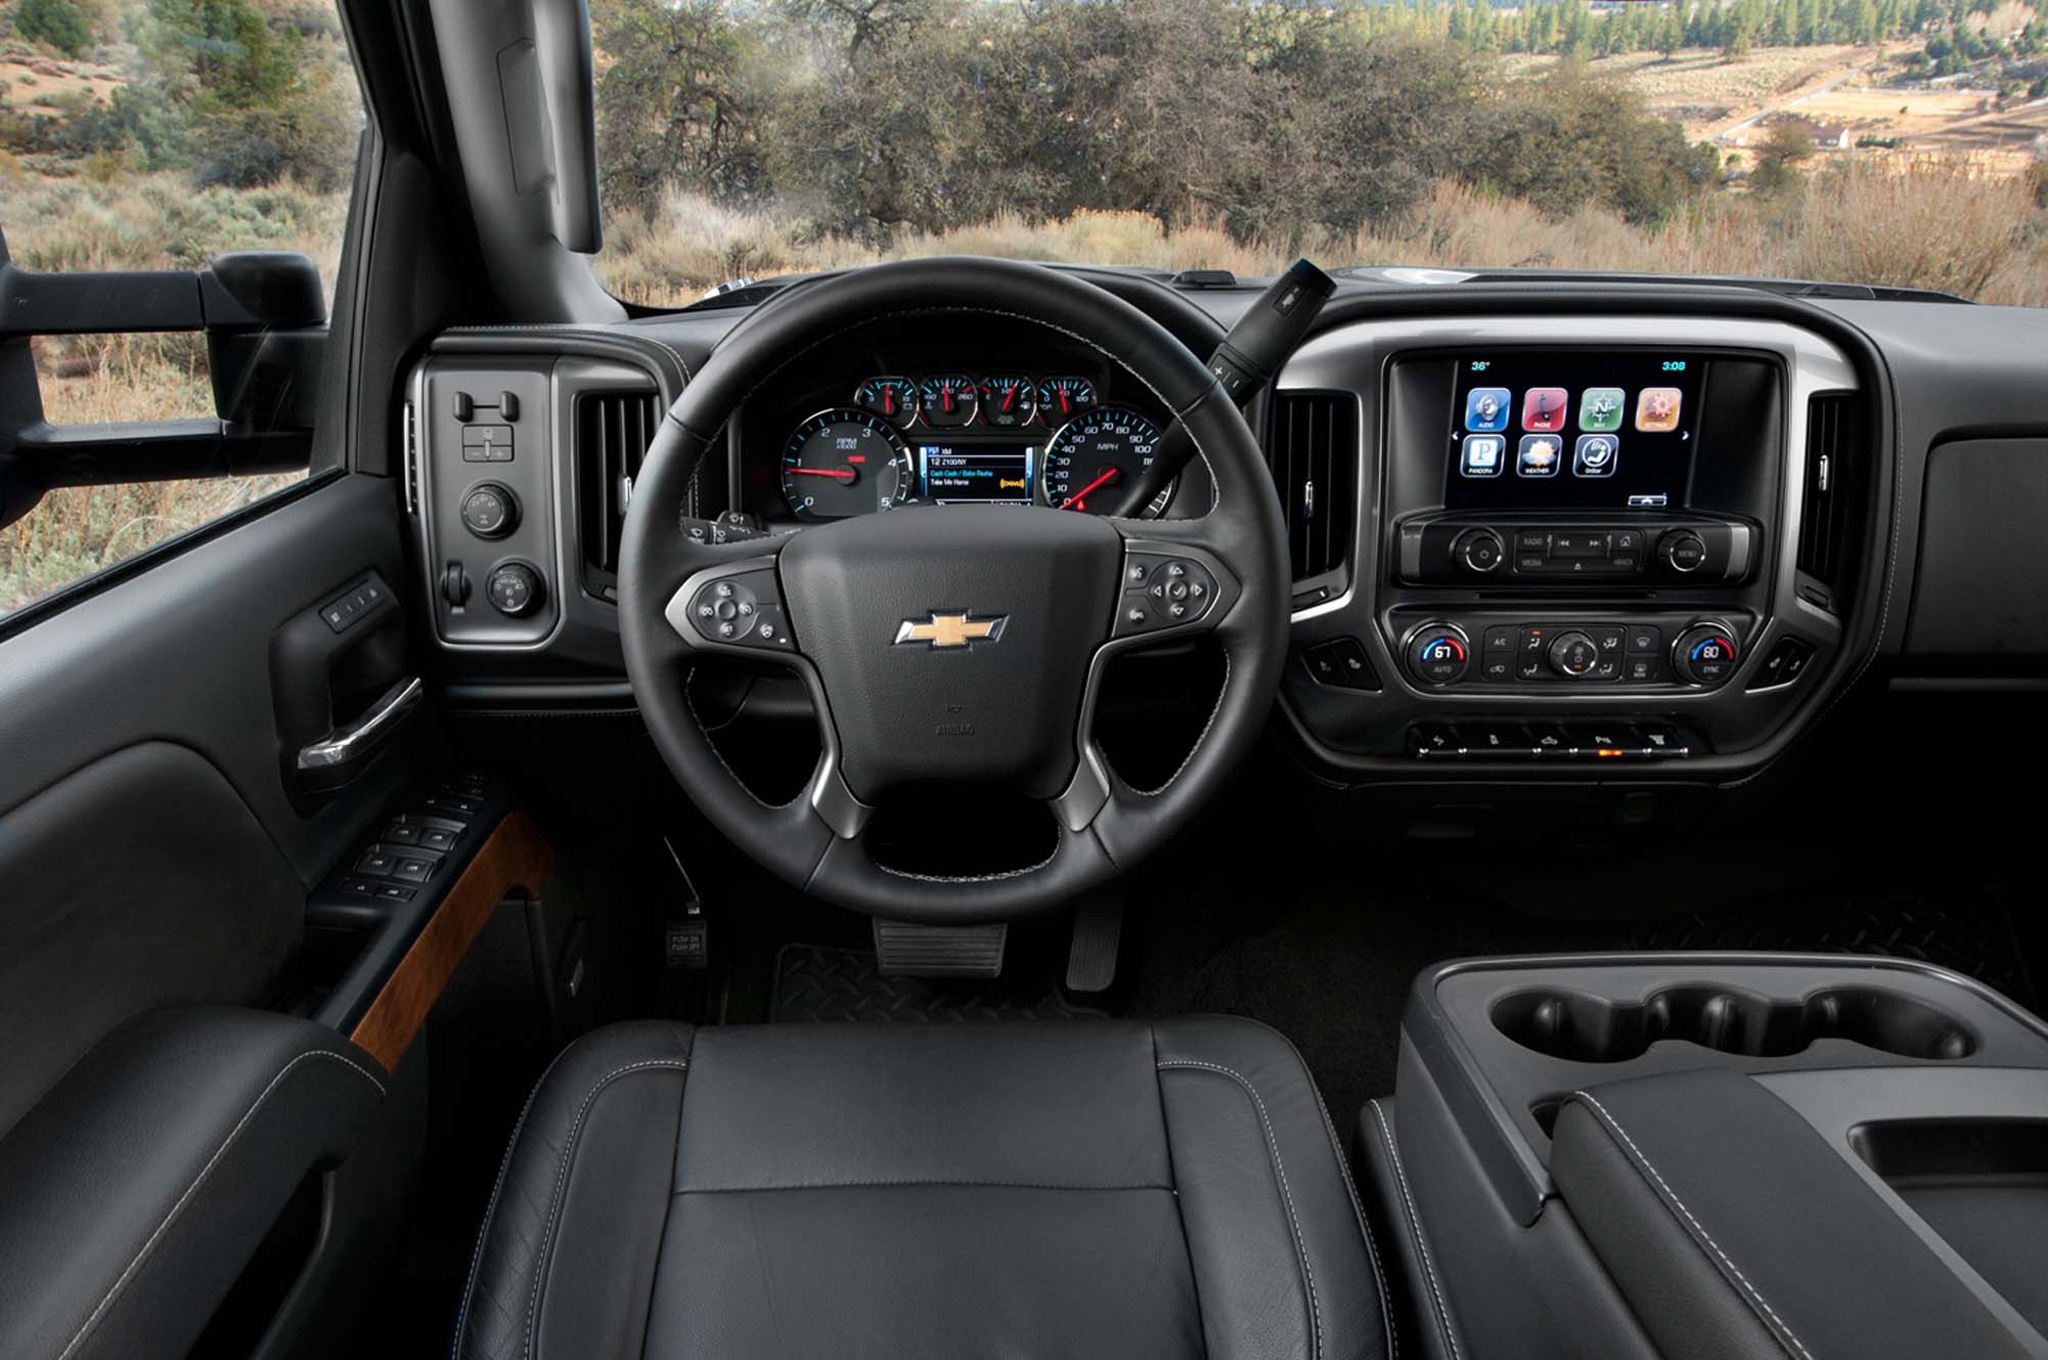 2015 Chevrolet Silverado Hd Dashboard (Photo 4 of 6)